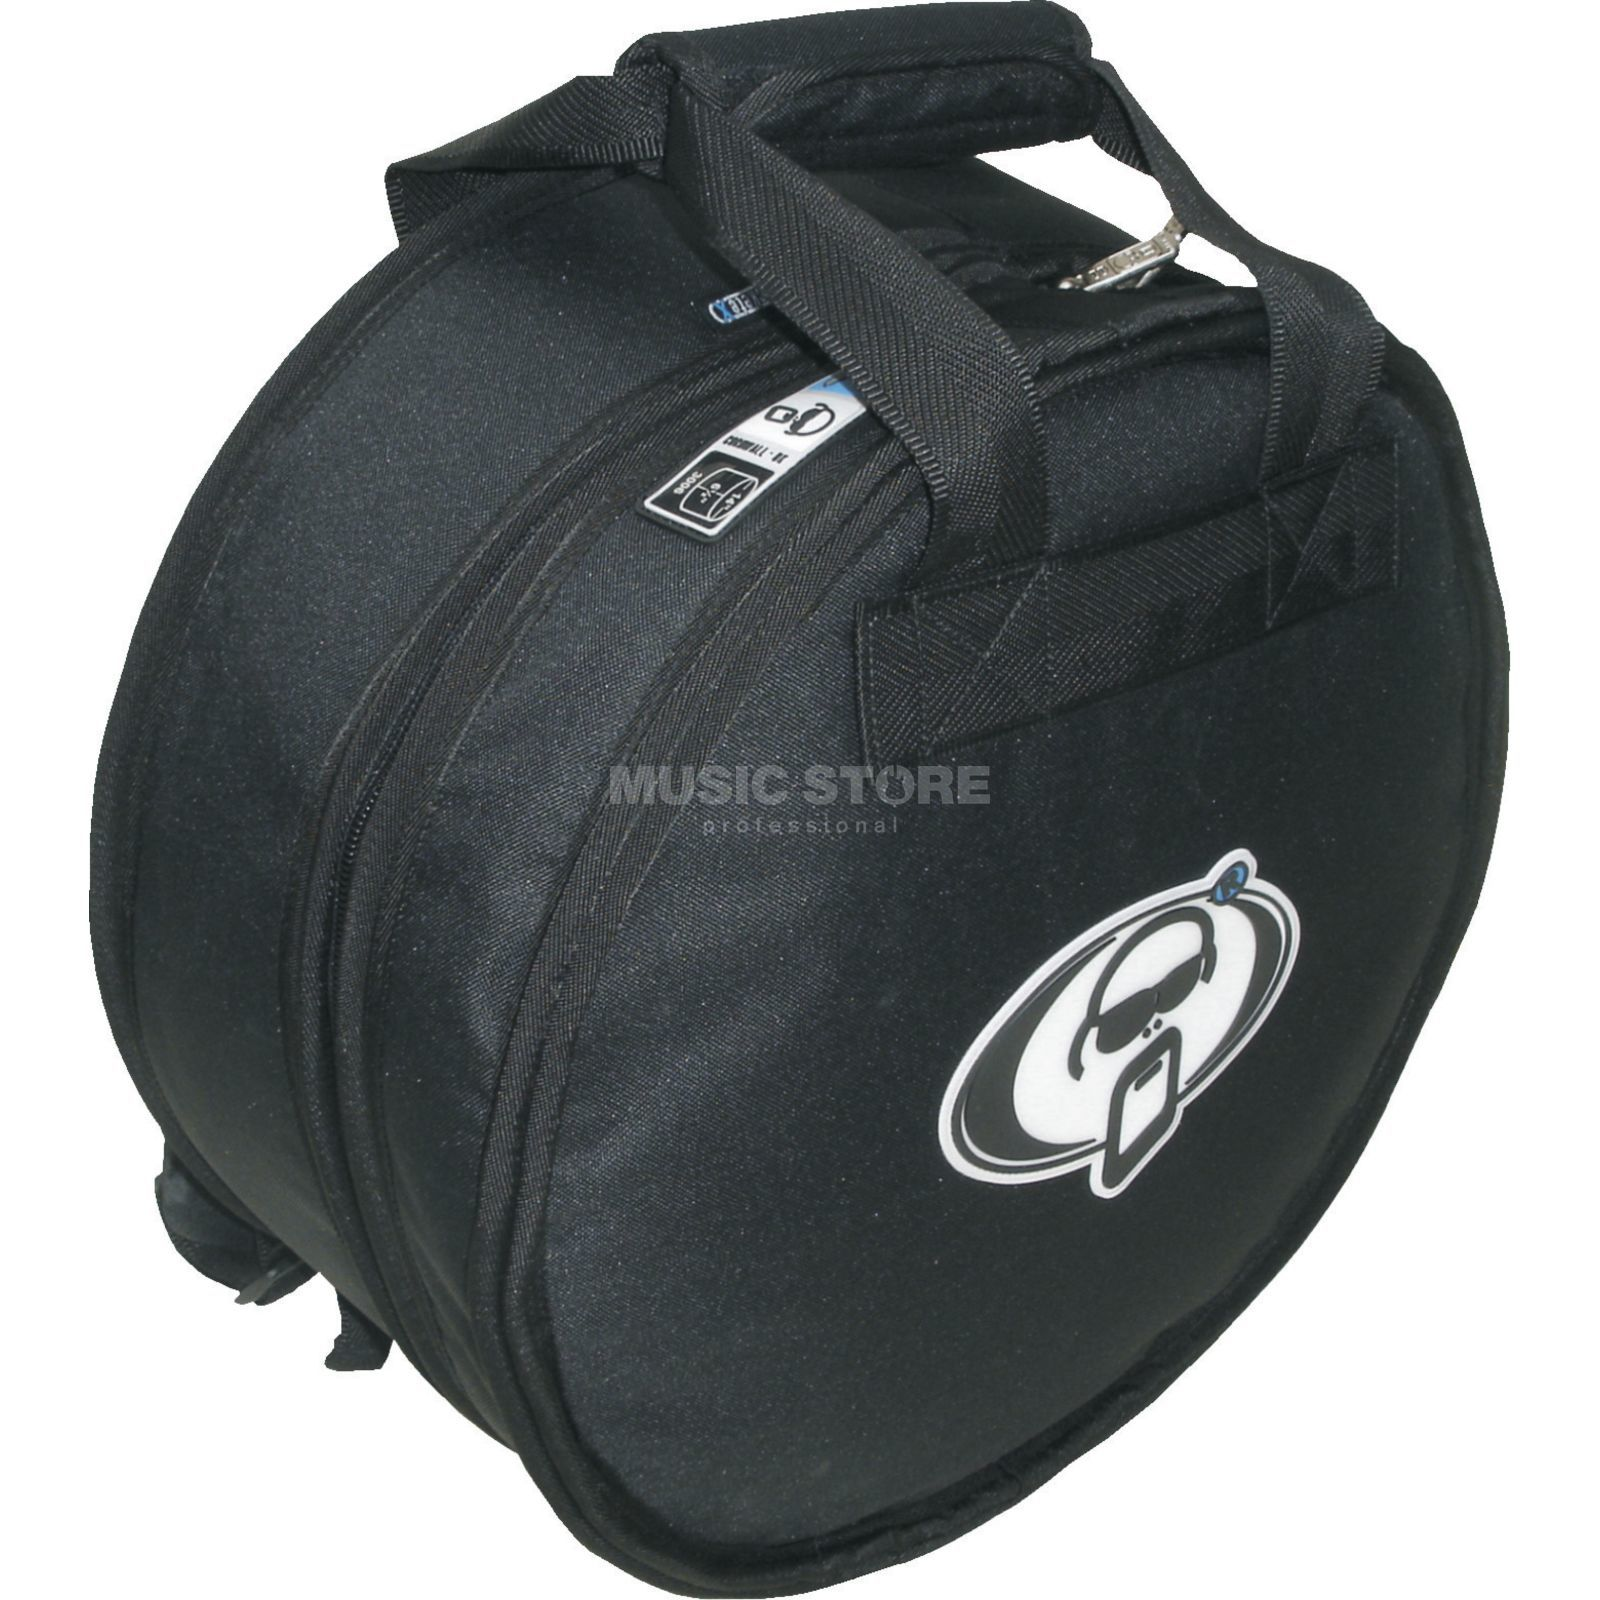 "Protection Racket Snare Bag Mochila 3006RS, 14""x6,5"" Imagen del producto"